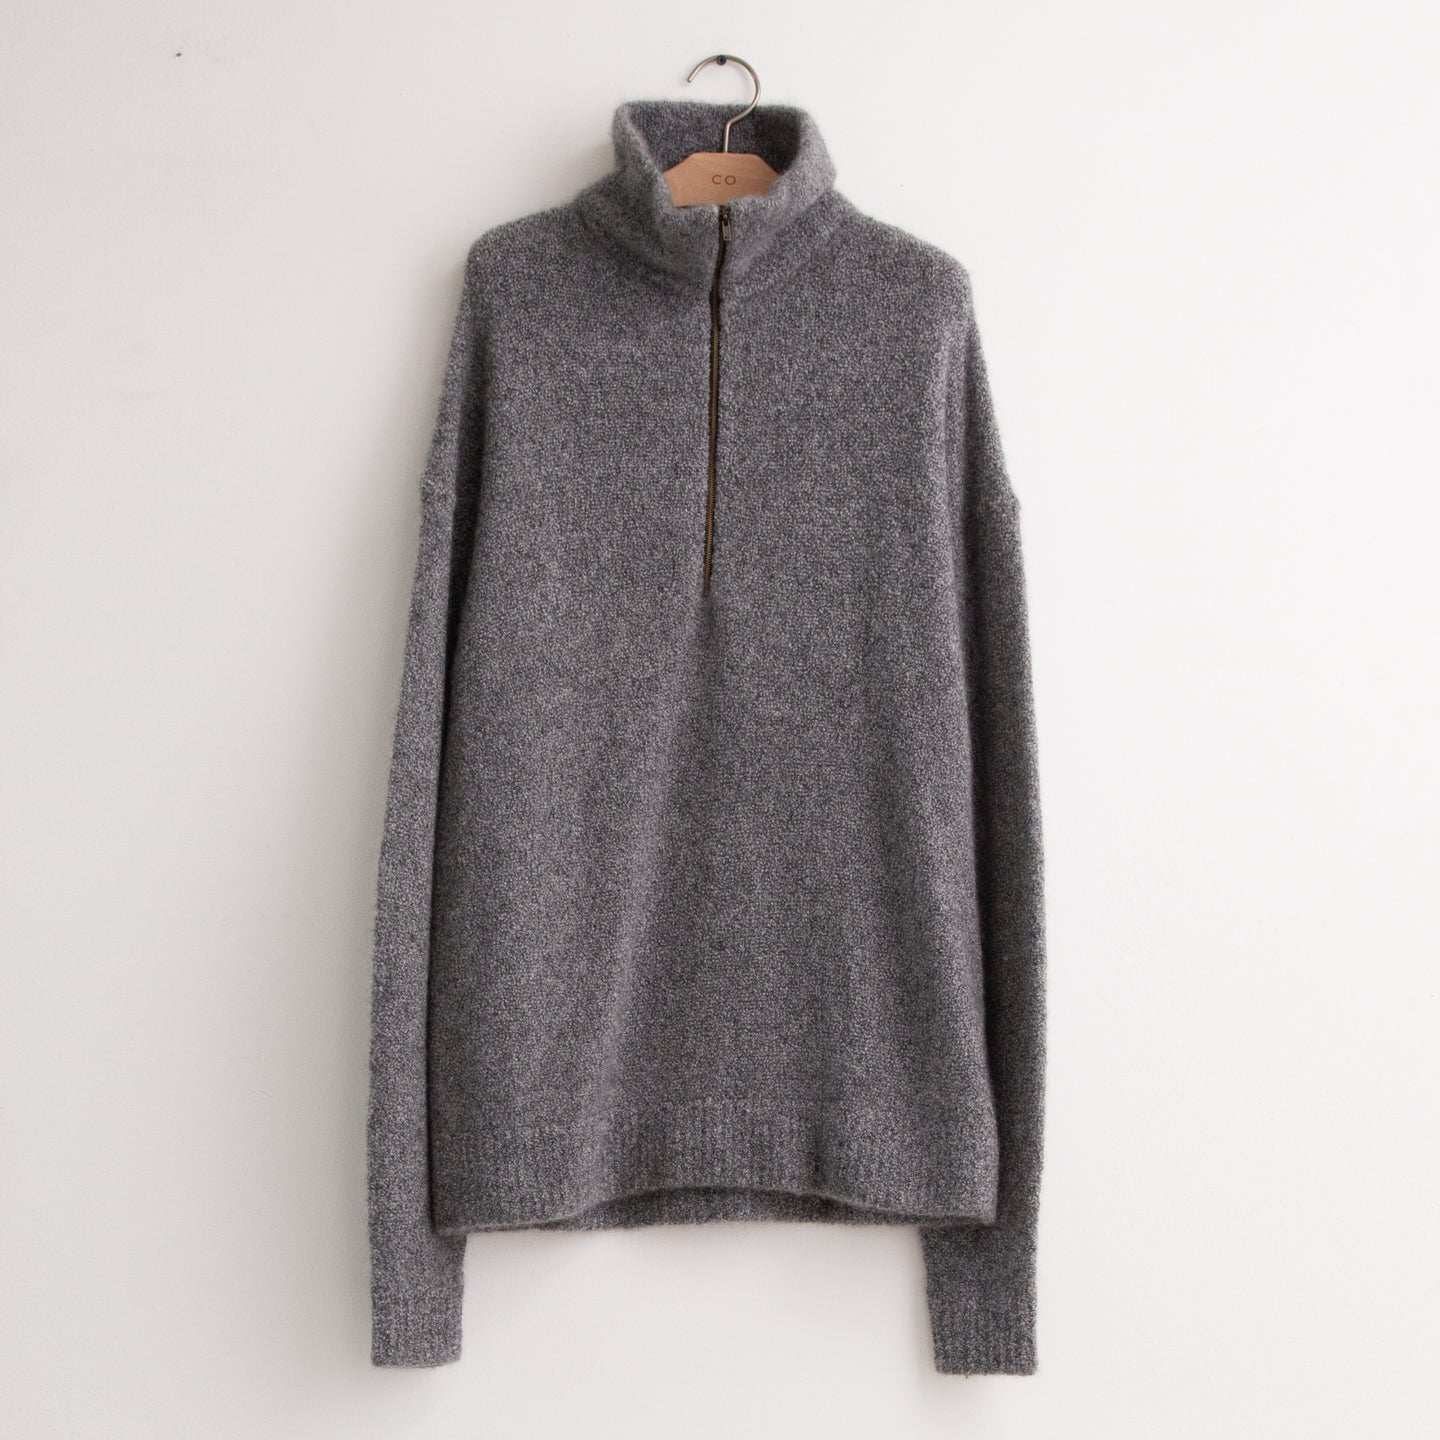 Mock neck half zip sweater in grey wool boucle - CO